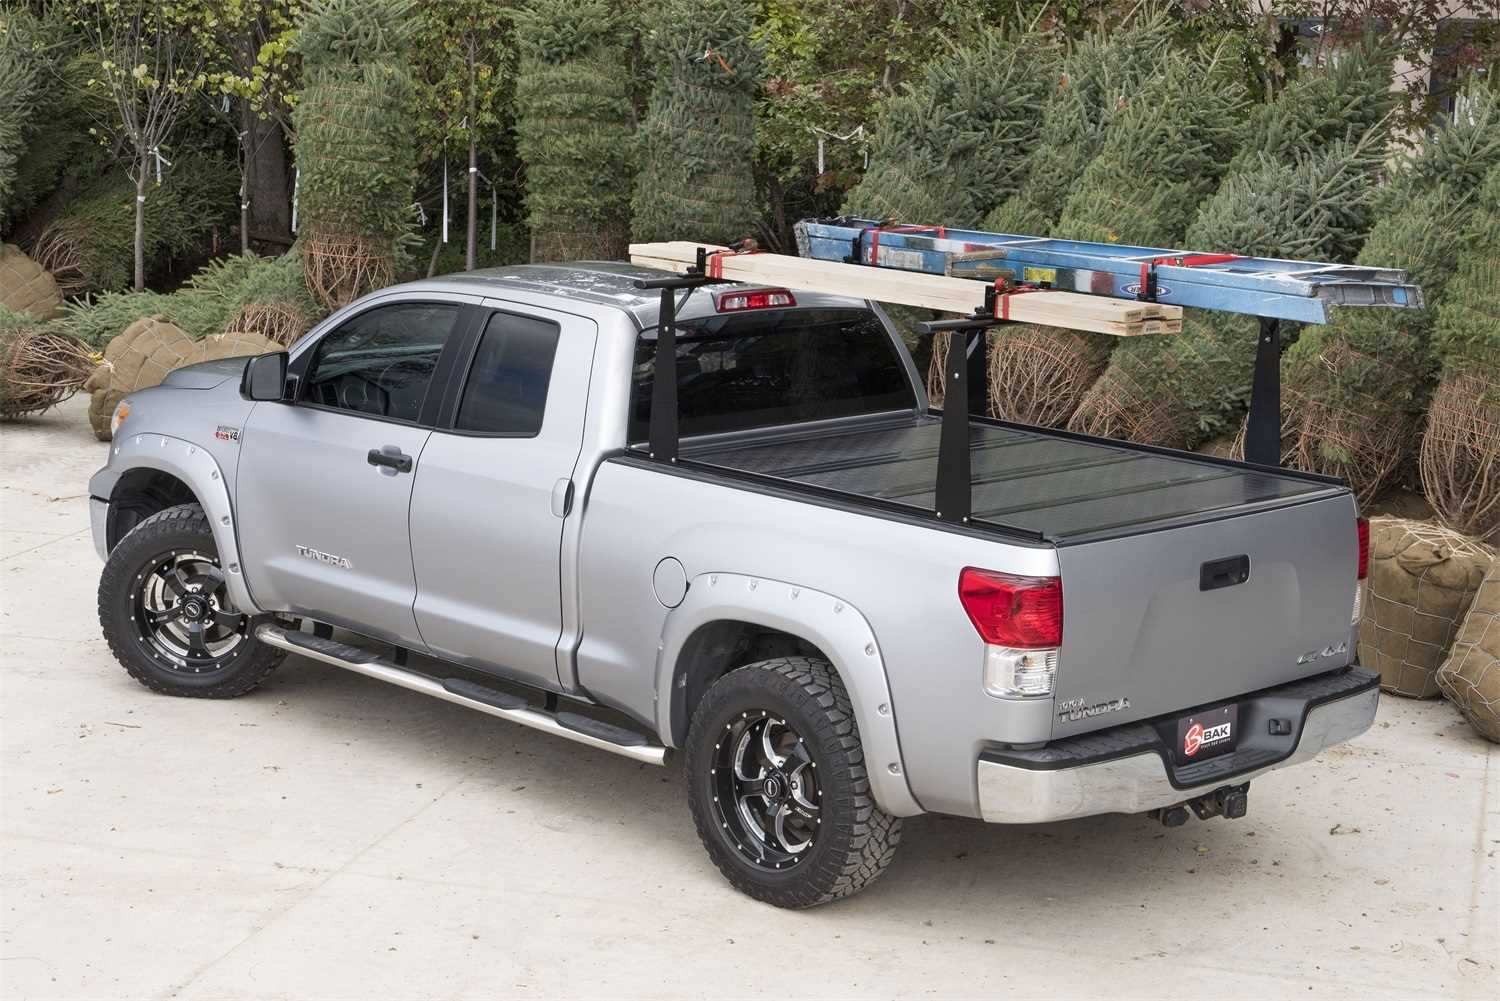 72402BT Bak Industries BAKFlip CS-F1 Hard Folding Truck Bed Cover/Integrated Rack System